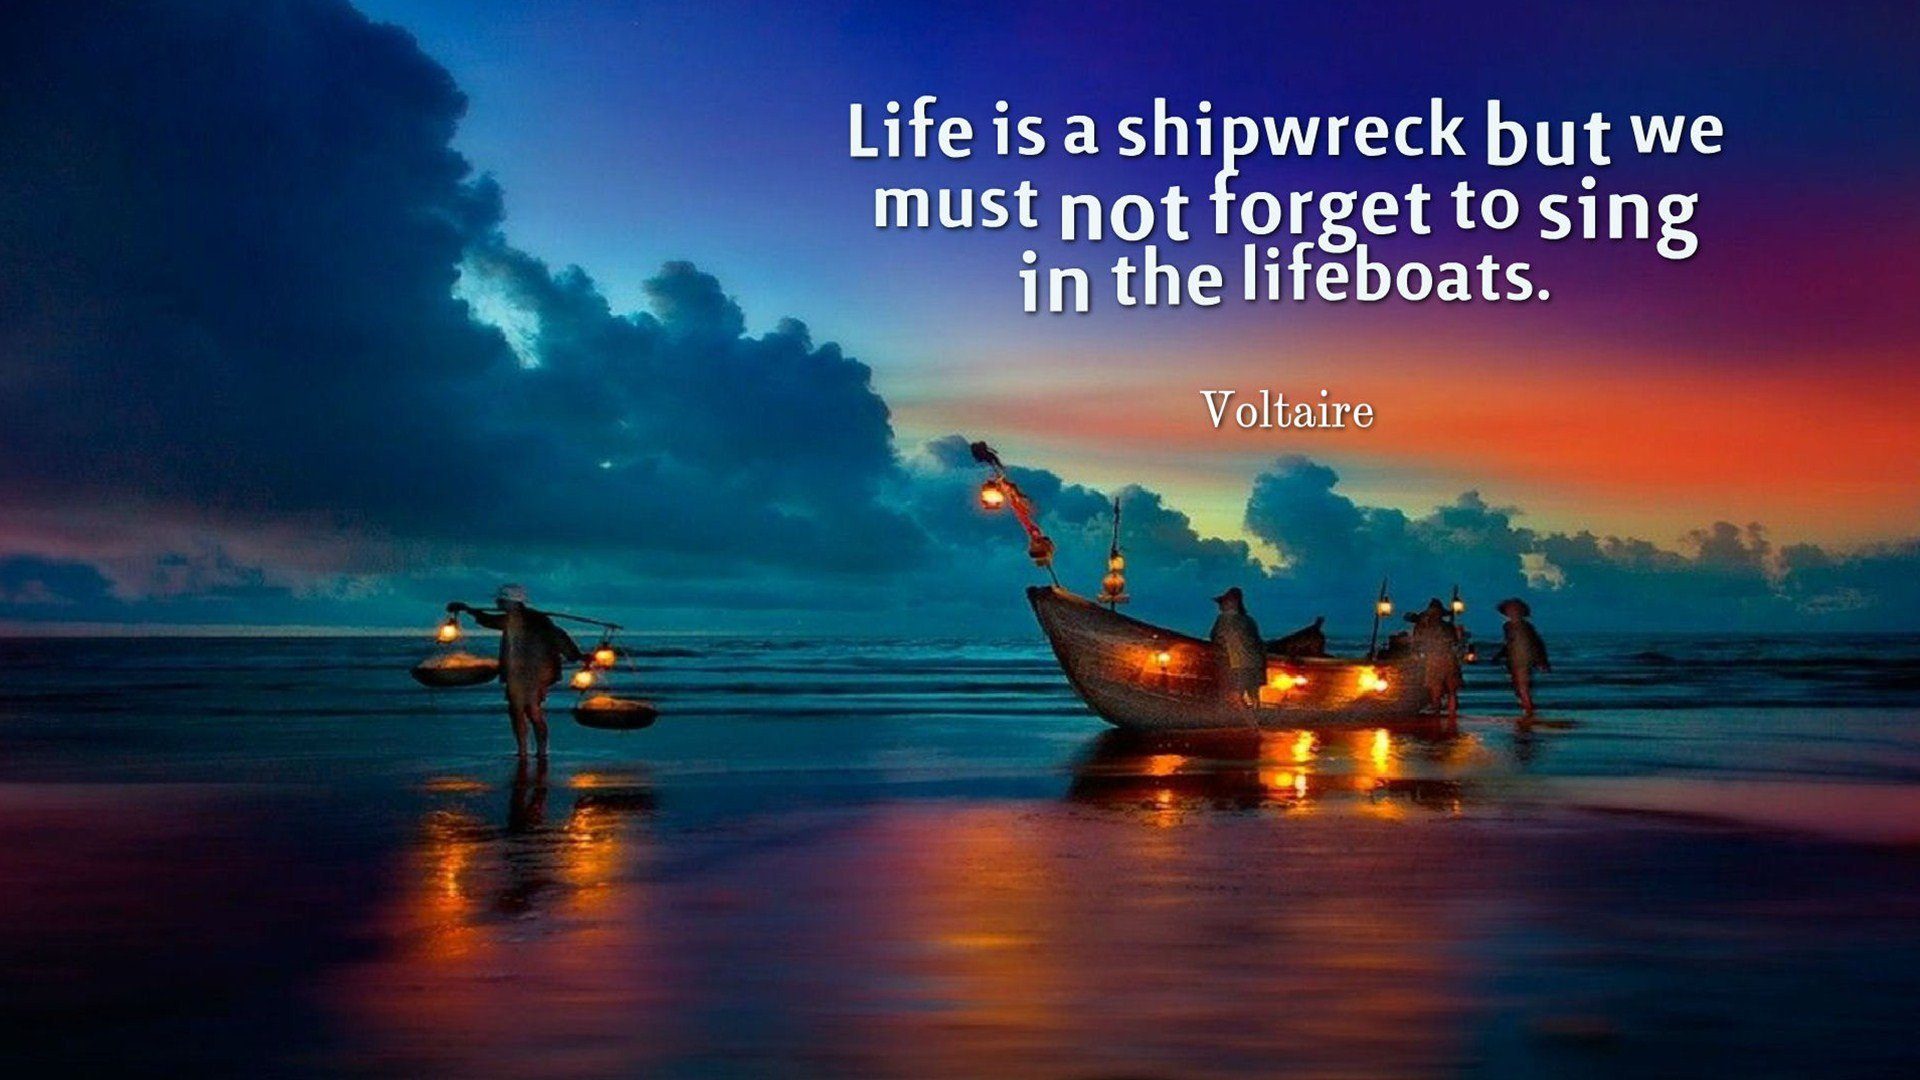 Cruise Ship Quotes And Sayings Quotesgram: Ship Quotes About Life. QuotesGram